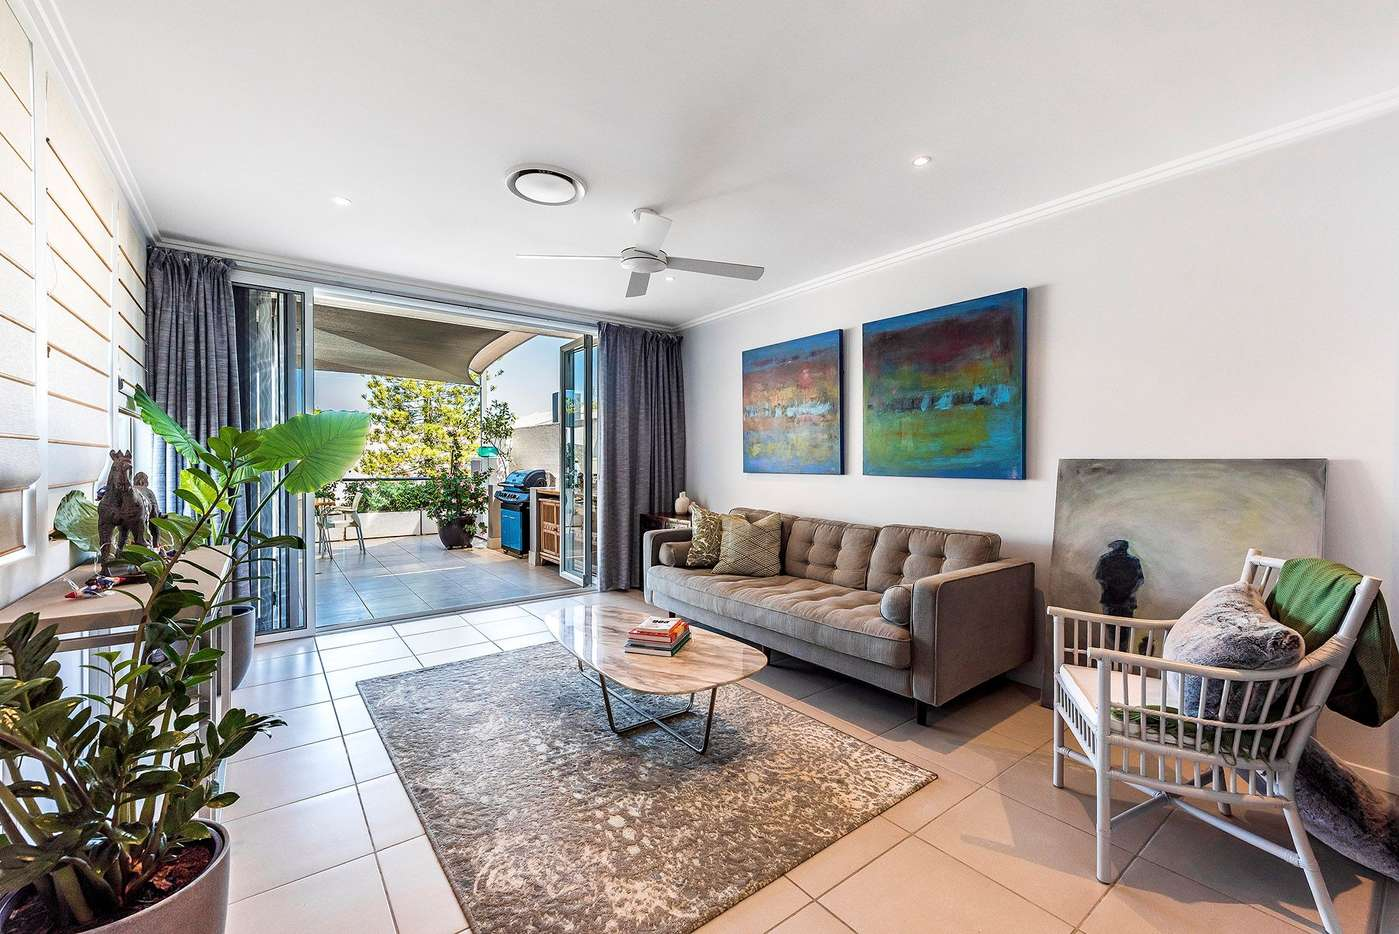 Main view of Homely house listing, 18 Moores Crescent, Varsity Lakes, QLD 4227